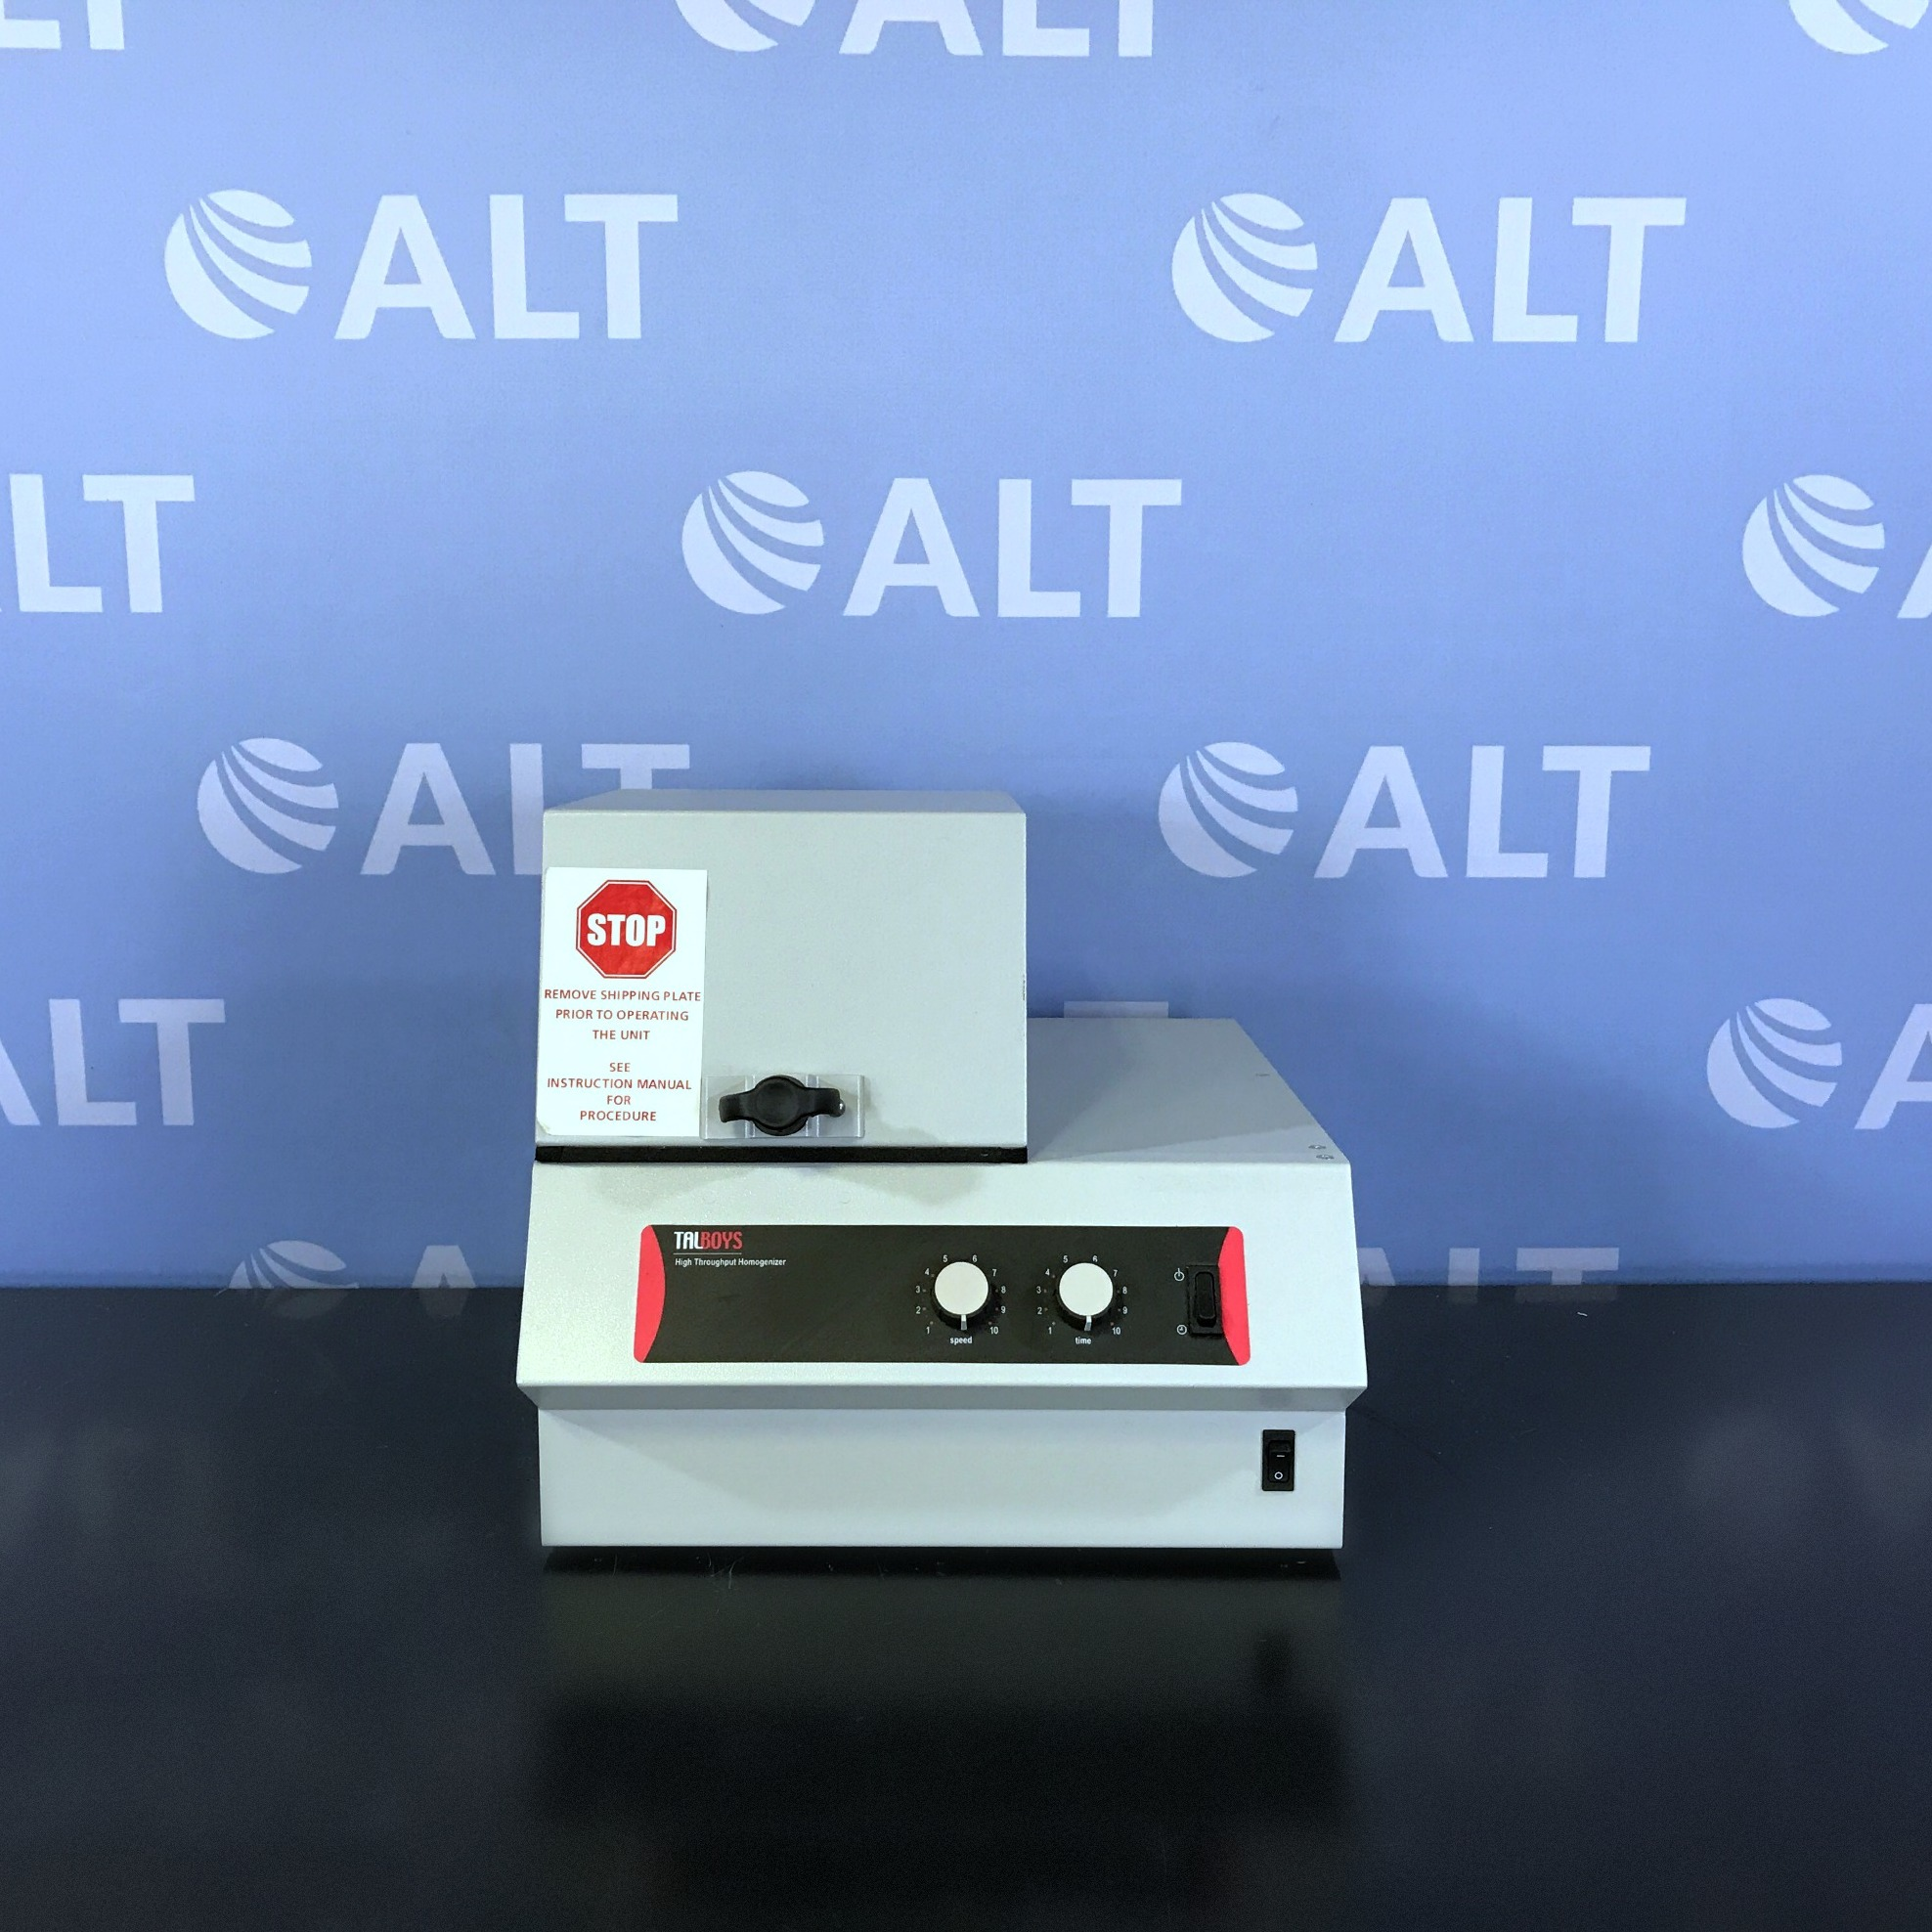 Talboys High Throughput Homogenizer CAT No. 930145 Image